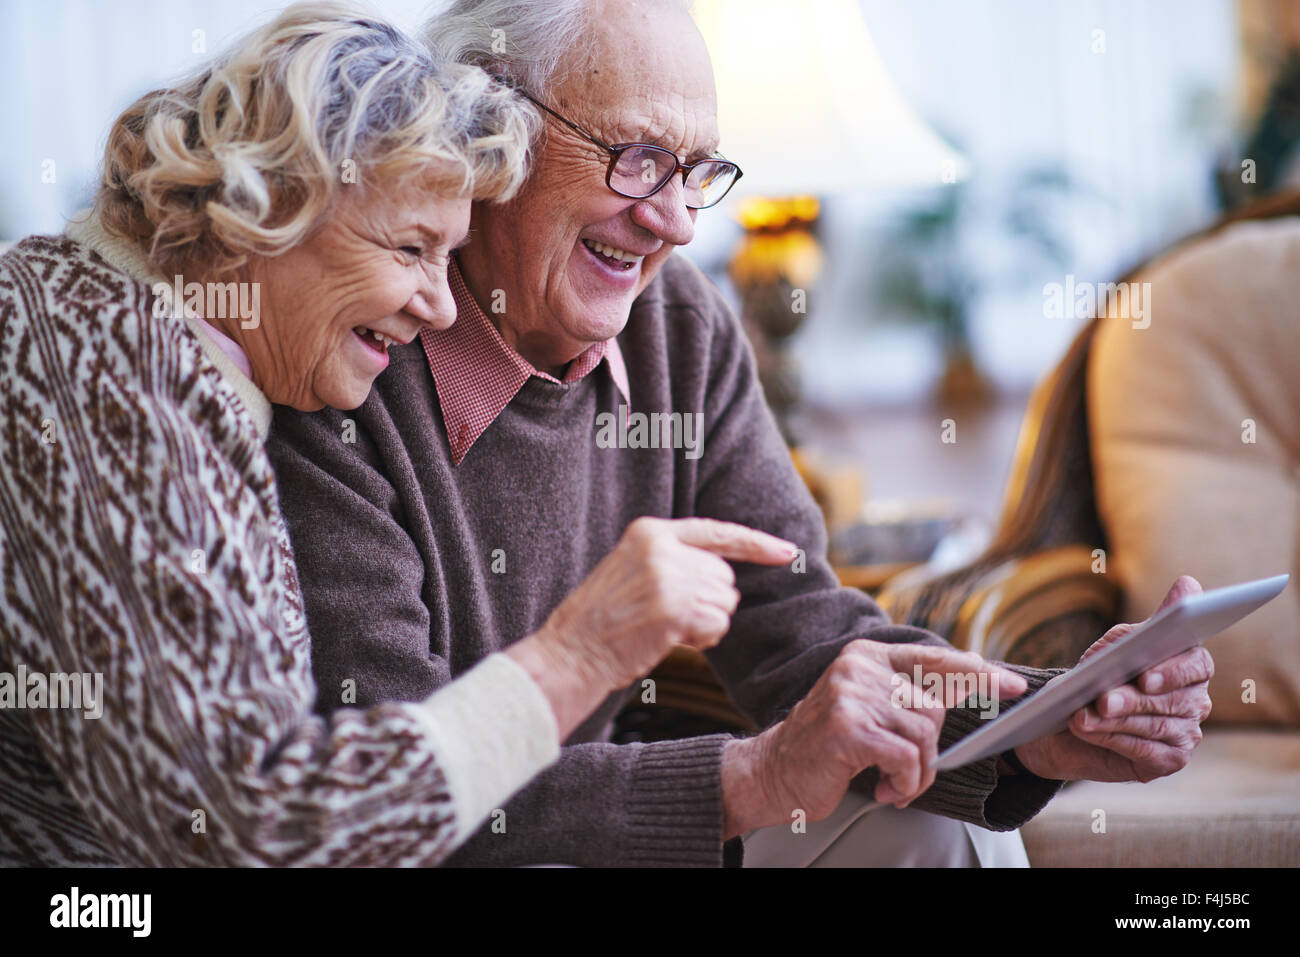 Happy seniors networking together at home - Stock Image